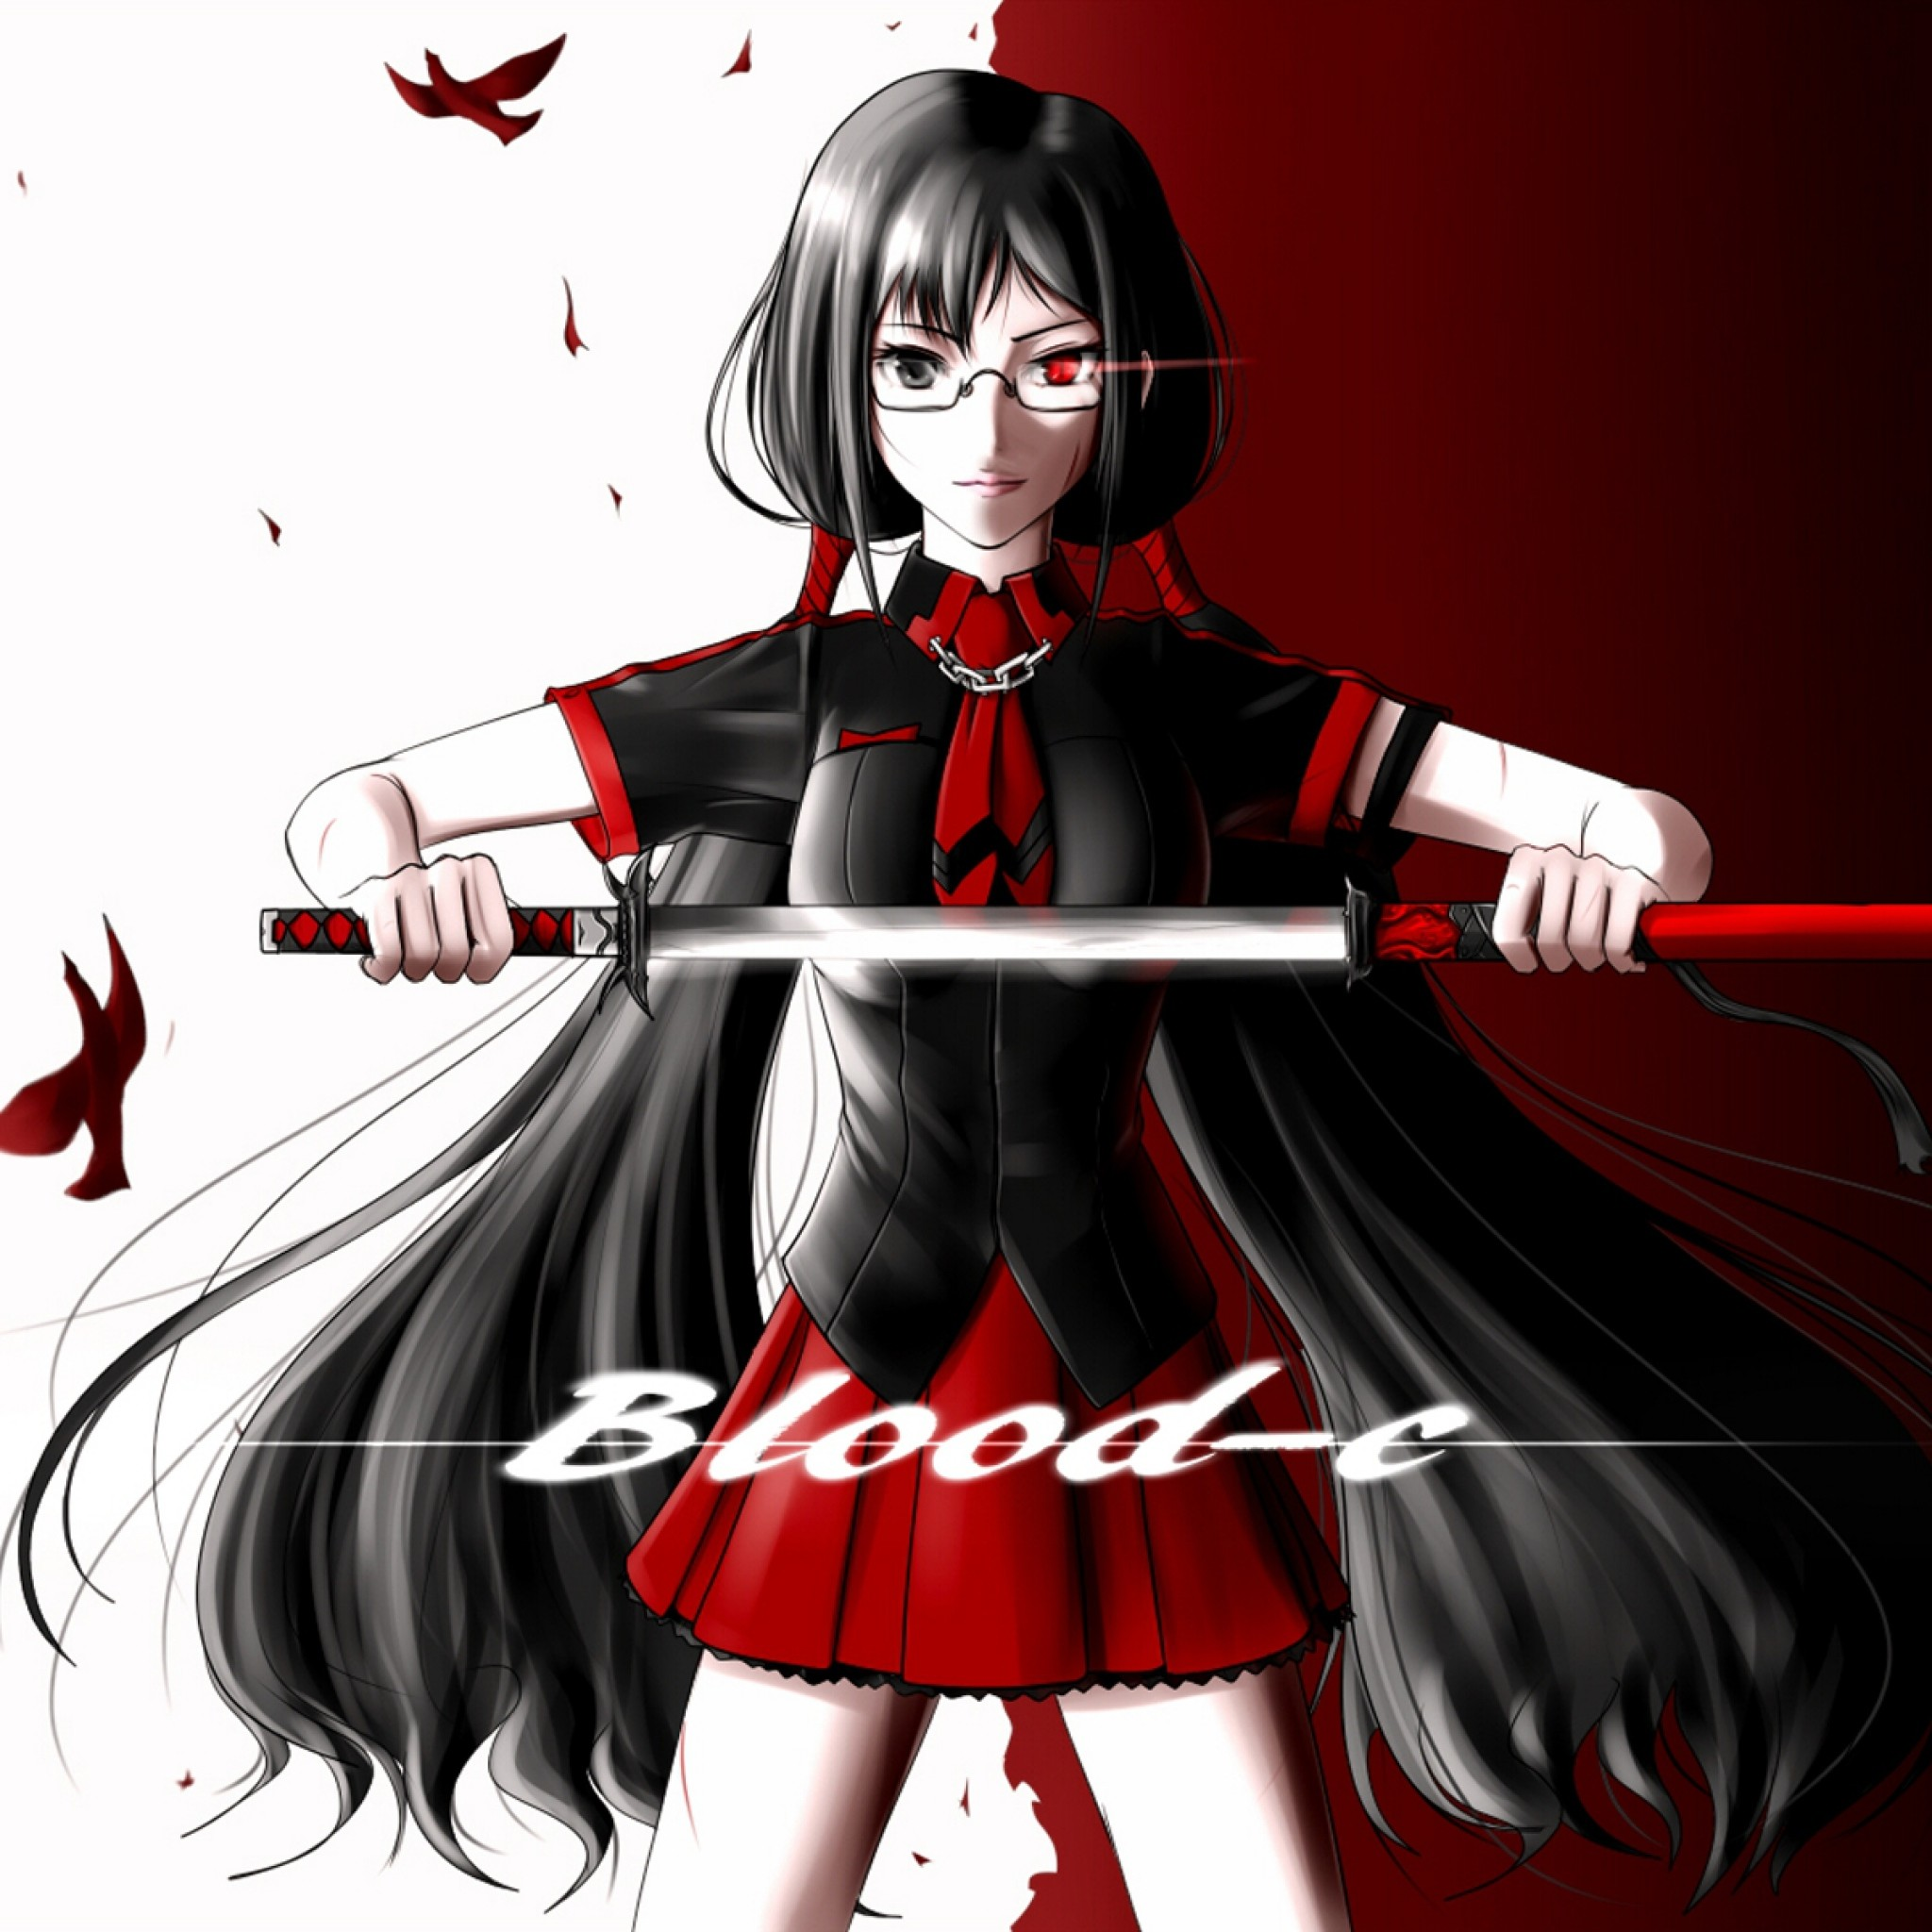 Blood C Wallpapers 67 Pictures